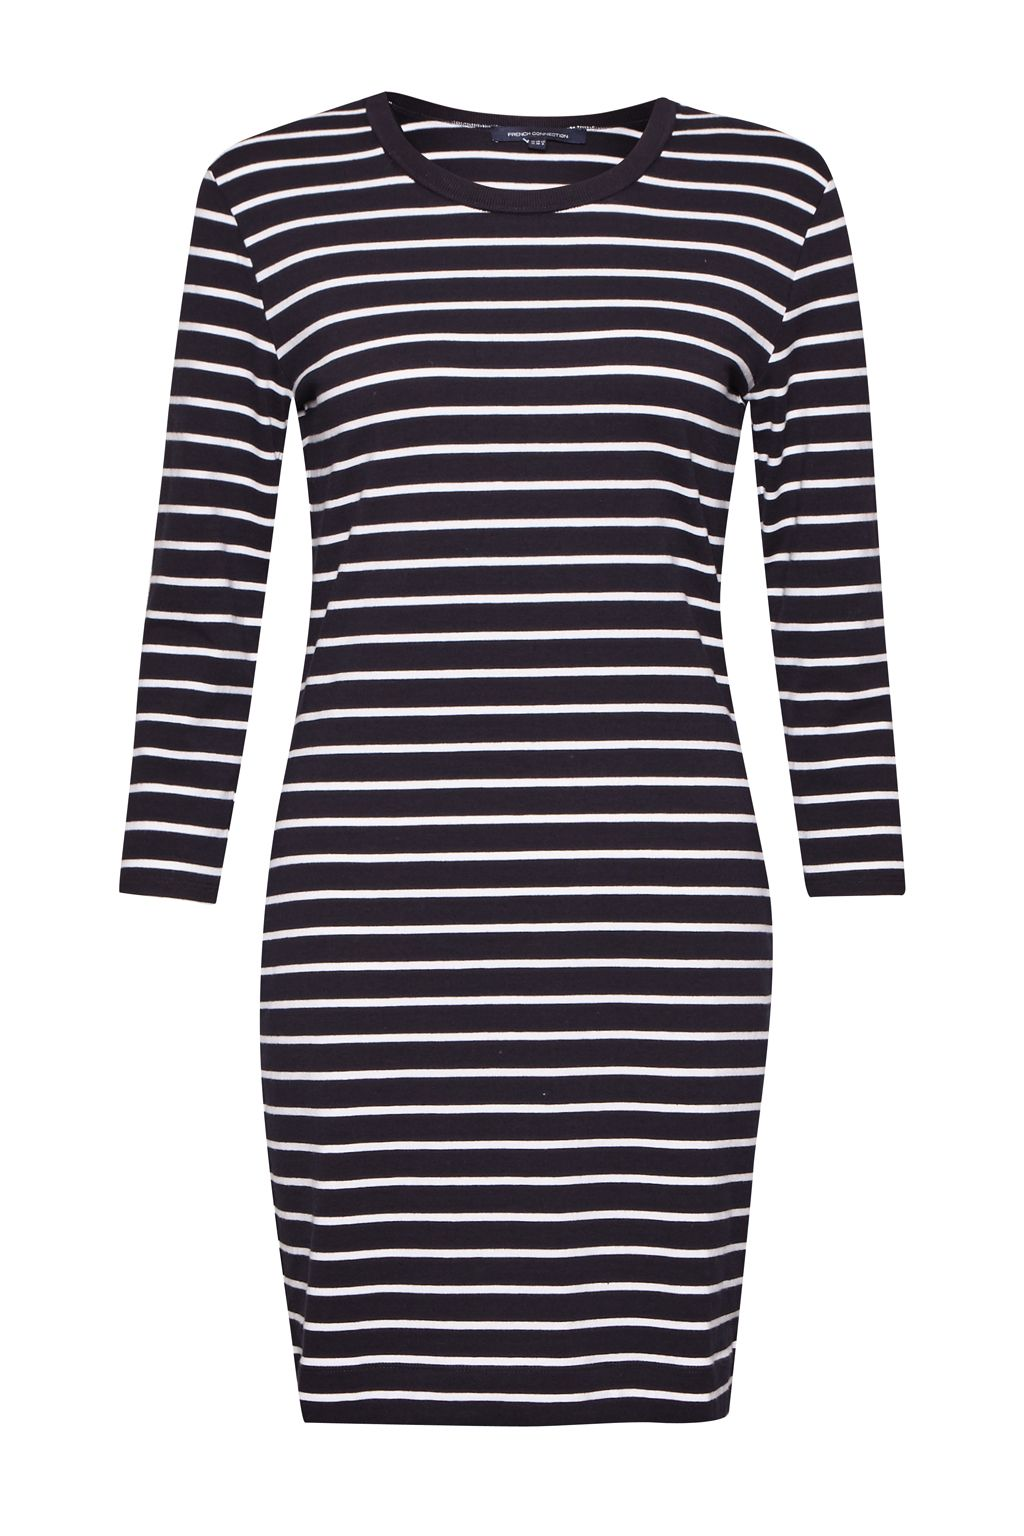 French Connection Tim Tim Striped Dress, Blue